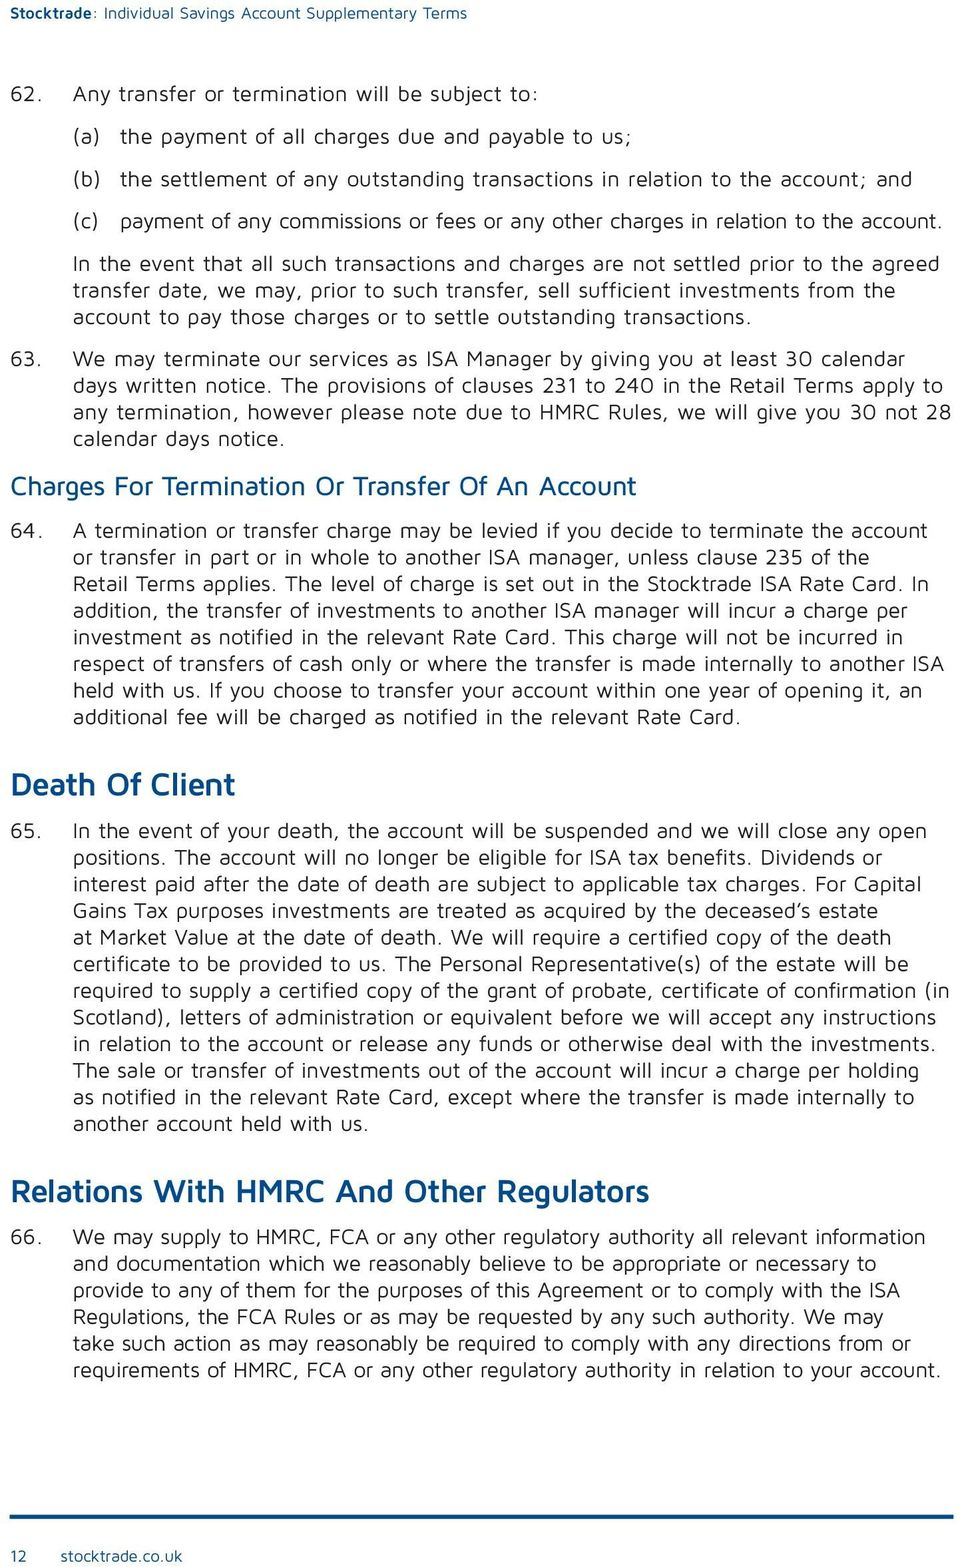 In the event that all such transactions and charges are not settled prior to the agreed transfer date, we may, prior to such transfer, sell sufficient investments from the account to pay those